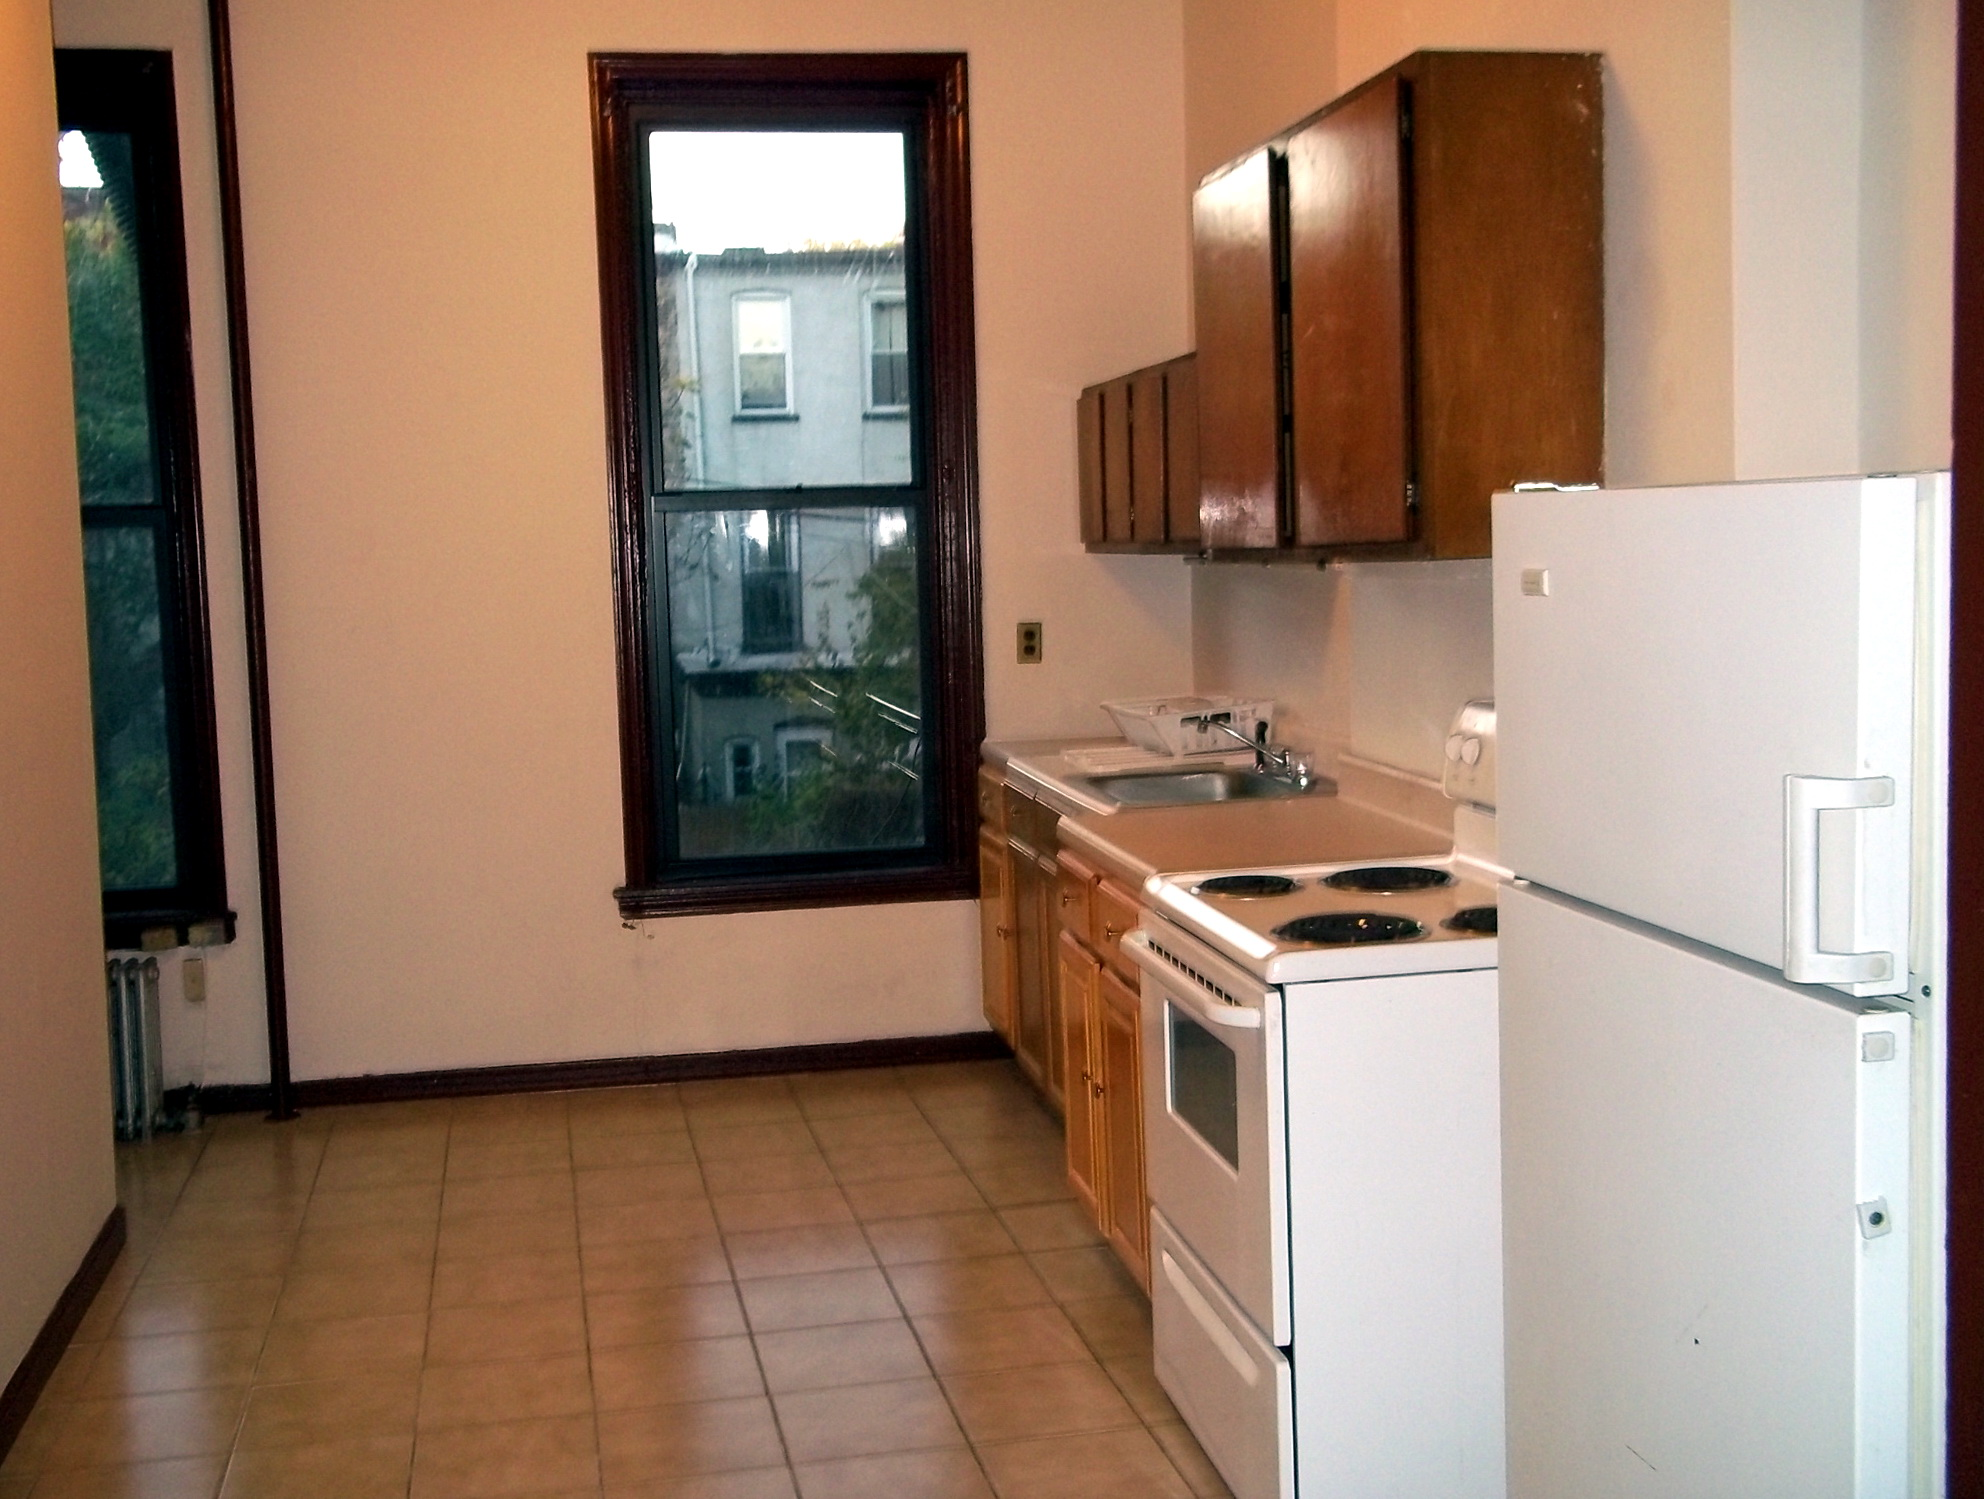 1 Bedroom Apartment For Rent In Chicago